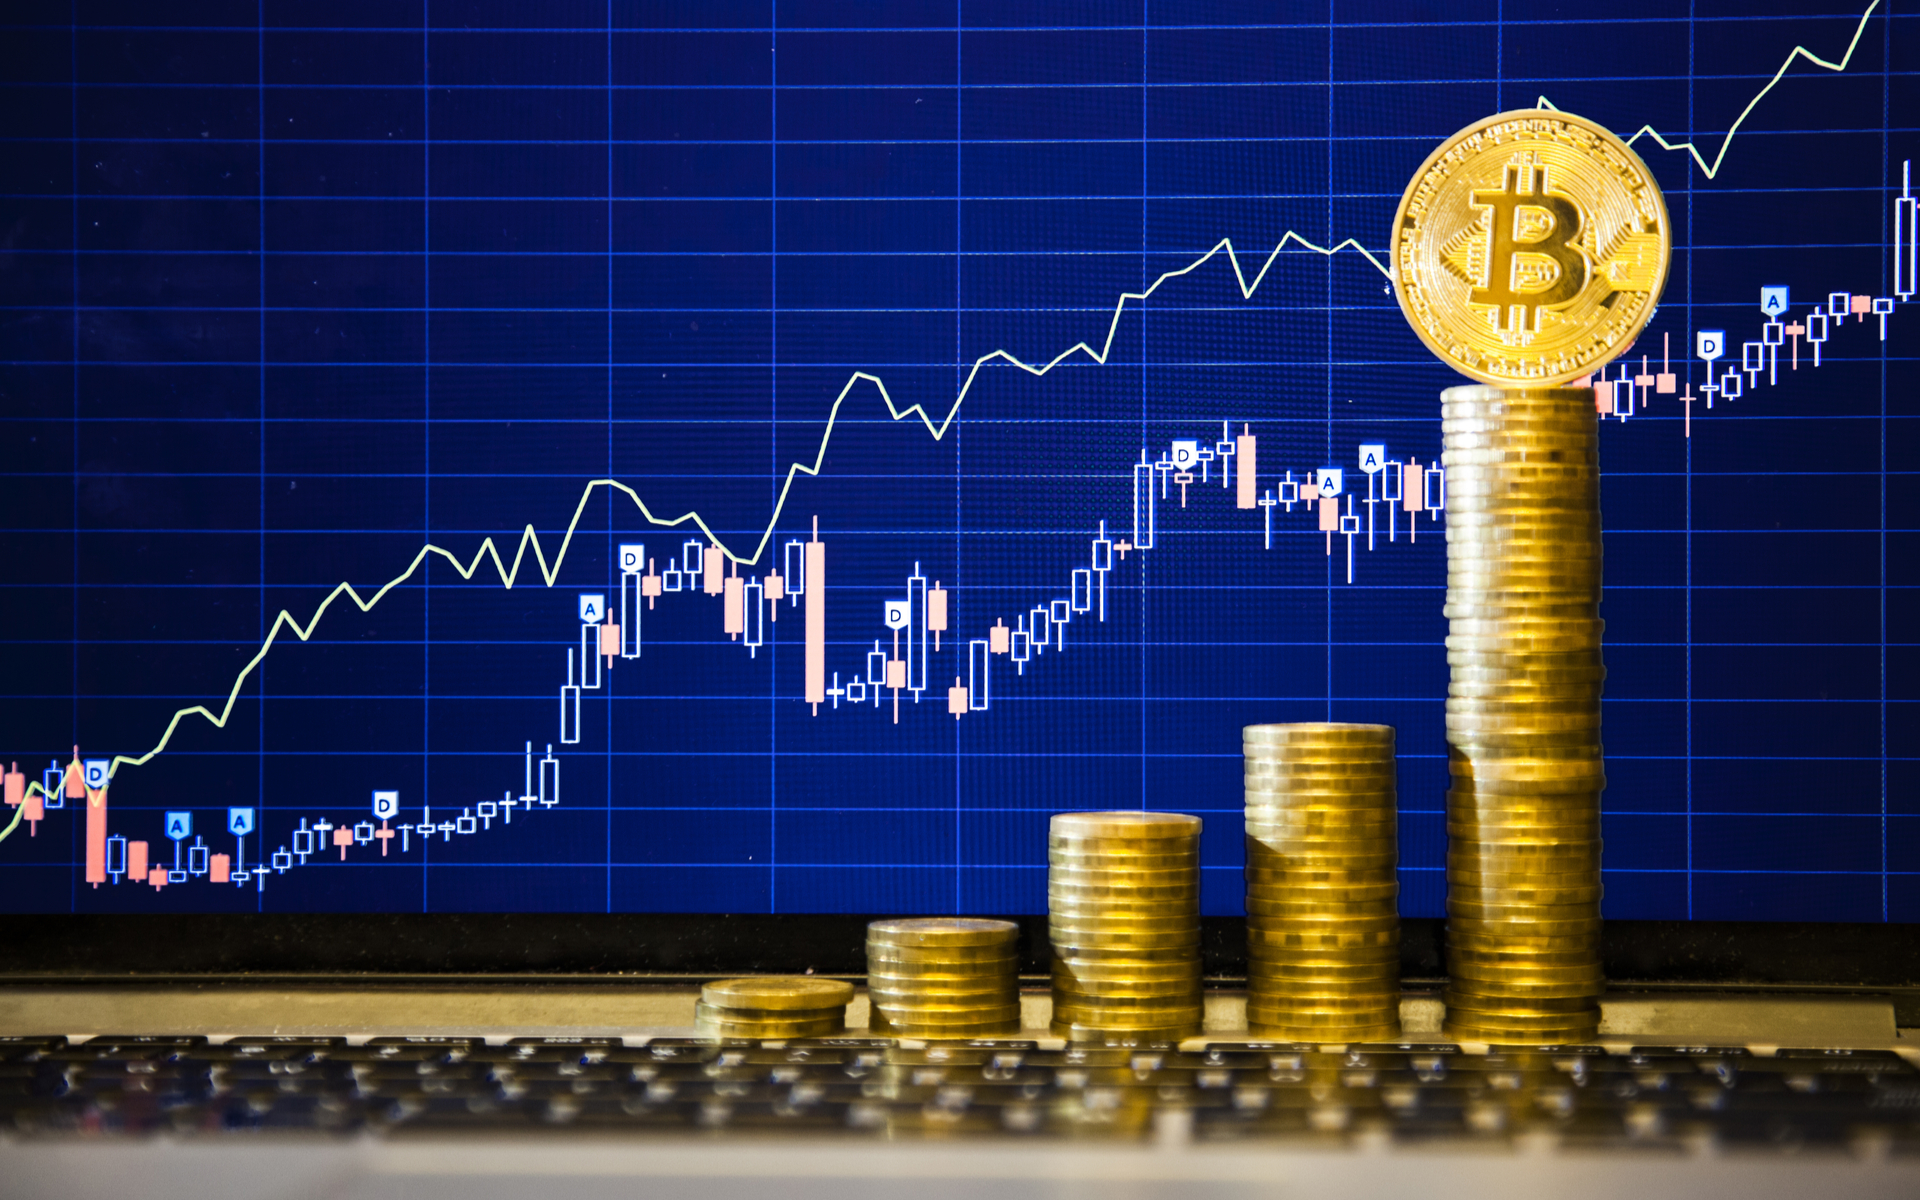 Bitcoin Investment - How to Make the Most of It